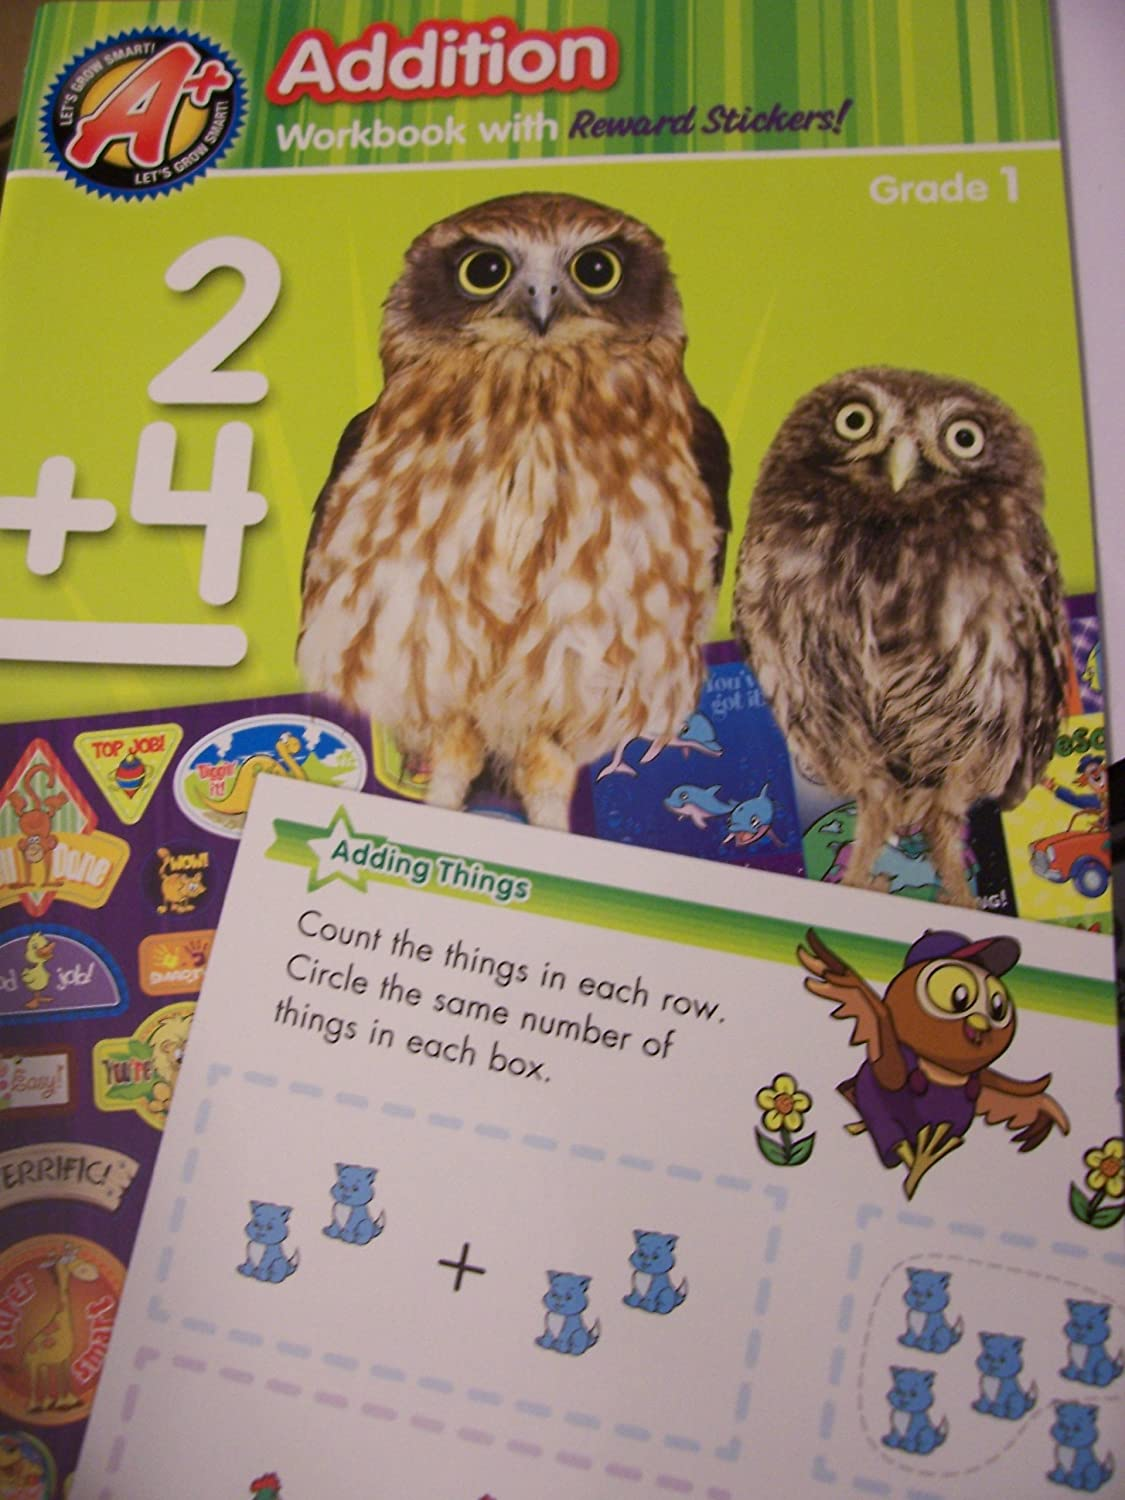 Amazon.com: A+ Educational Workbooks ~ Addition (Grade 1): Toys & Games